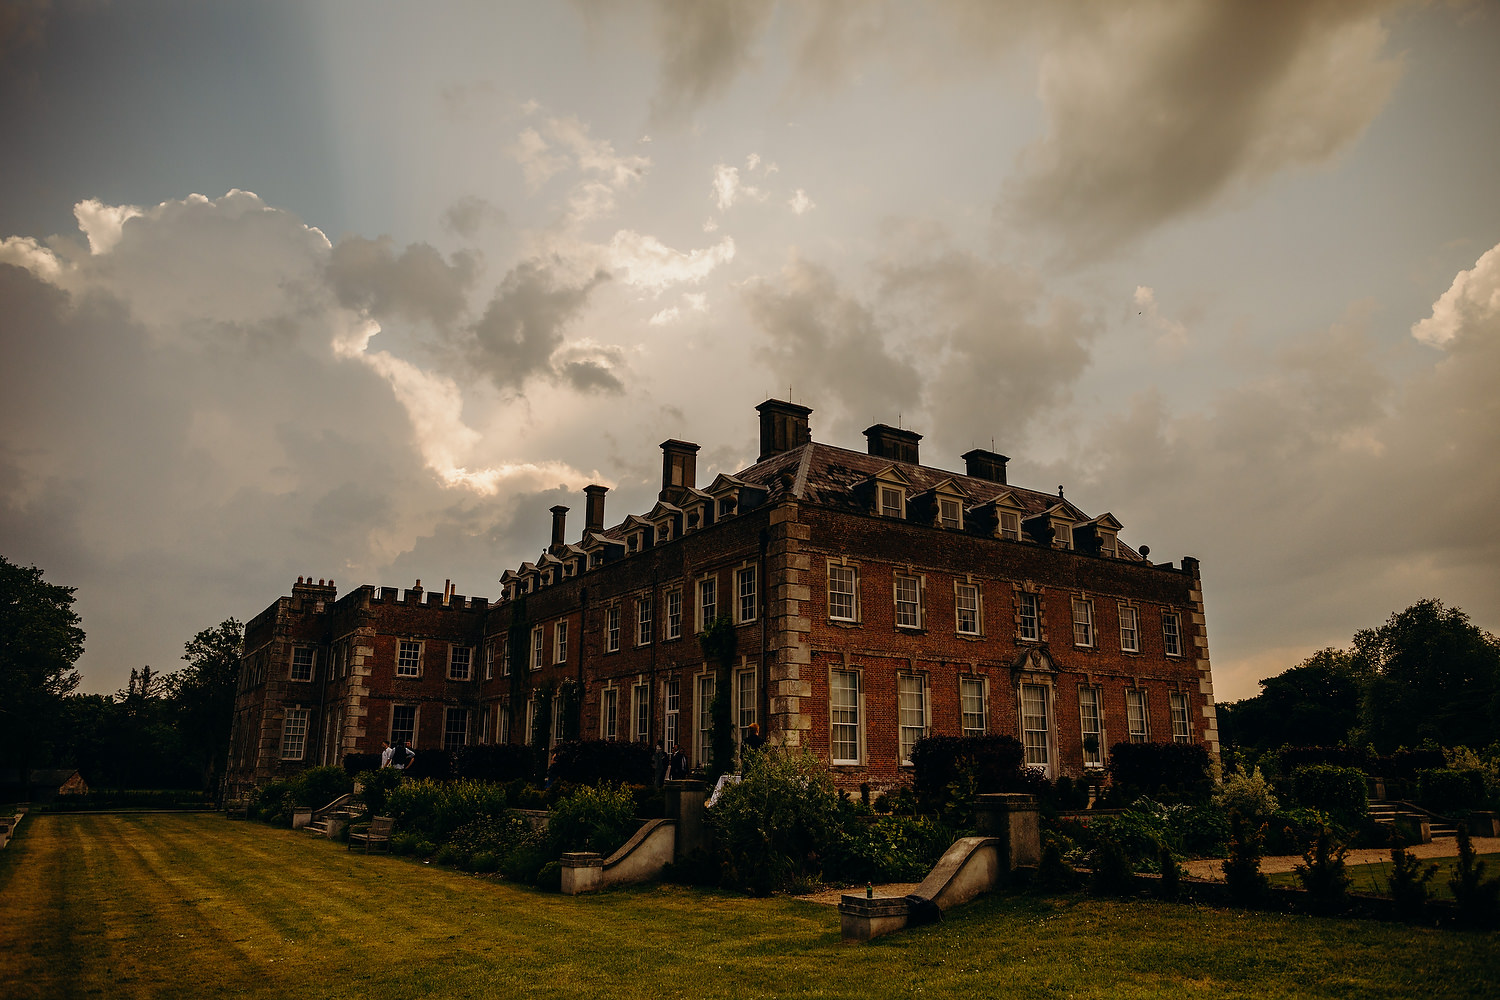 St Giles House at sunset